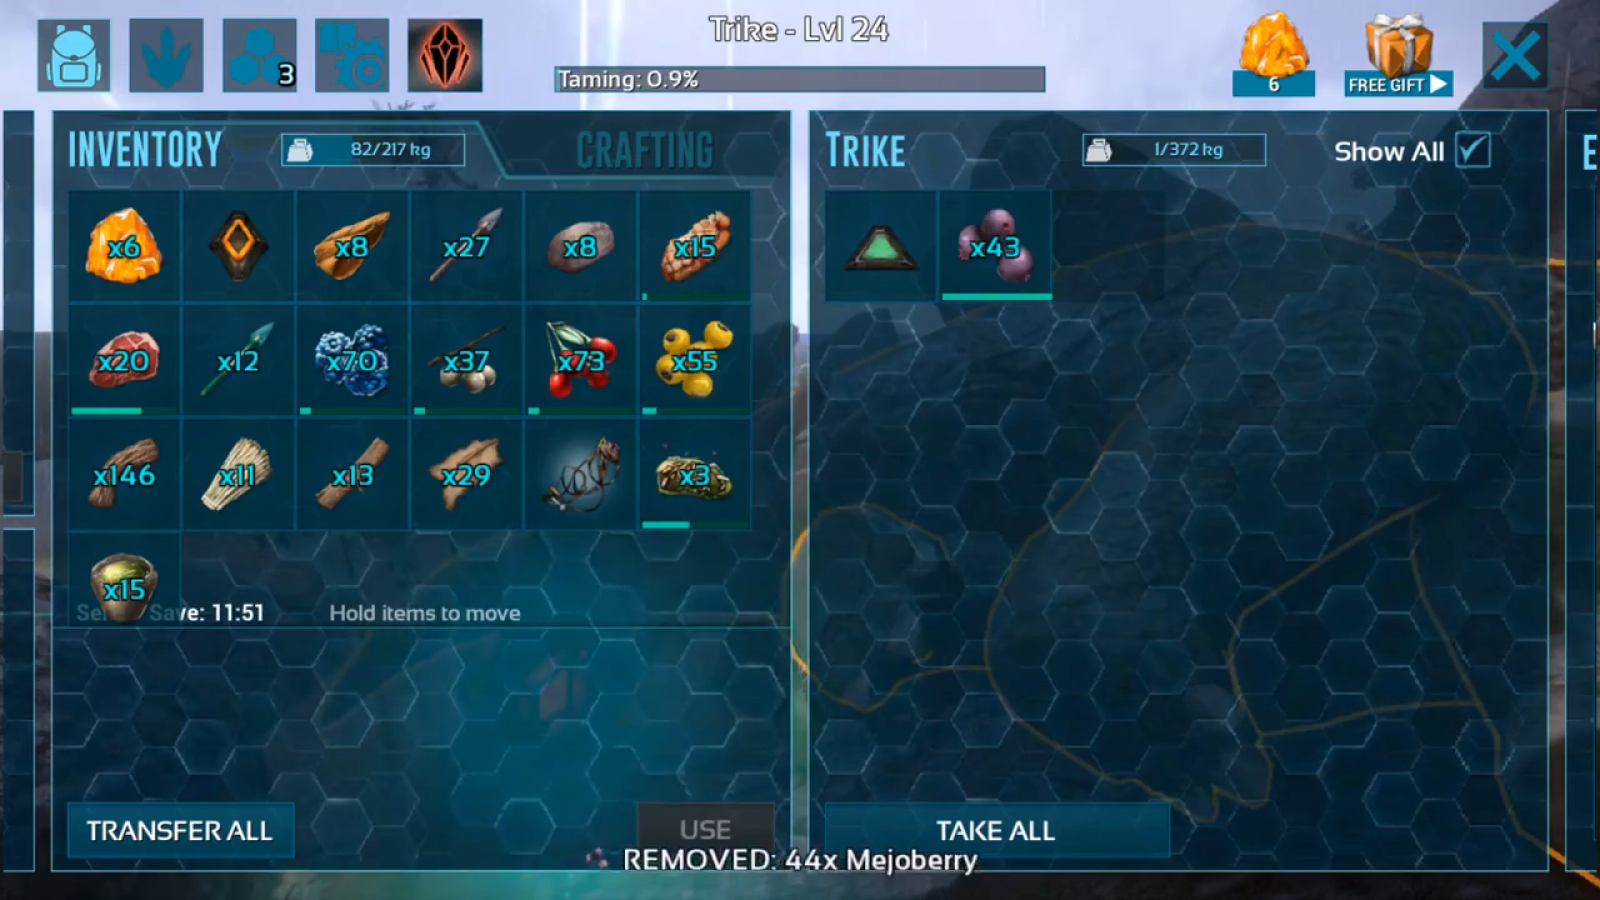 ARK: Survival Evolved' Mobile Guide: How to Craft, Tame